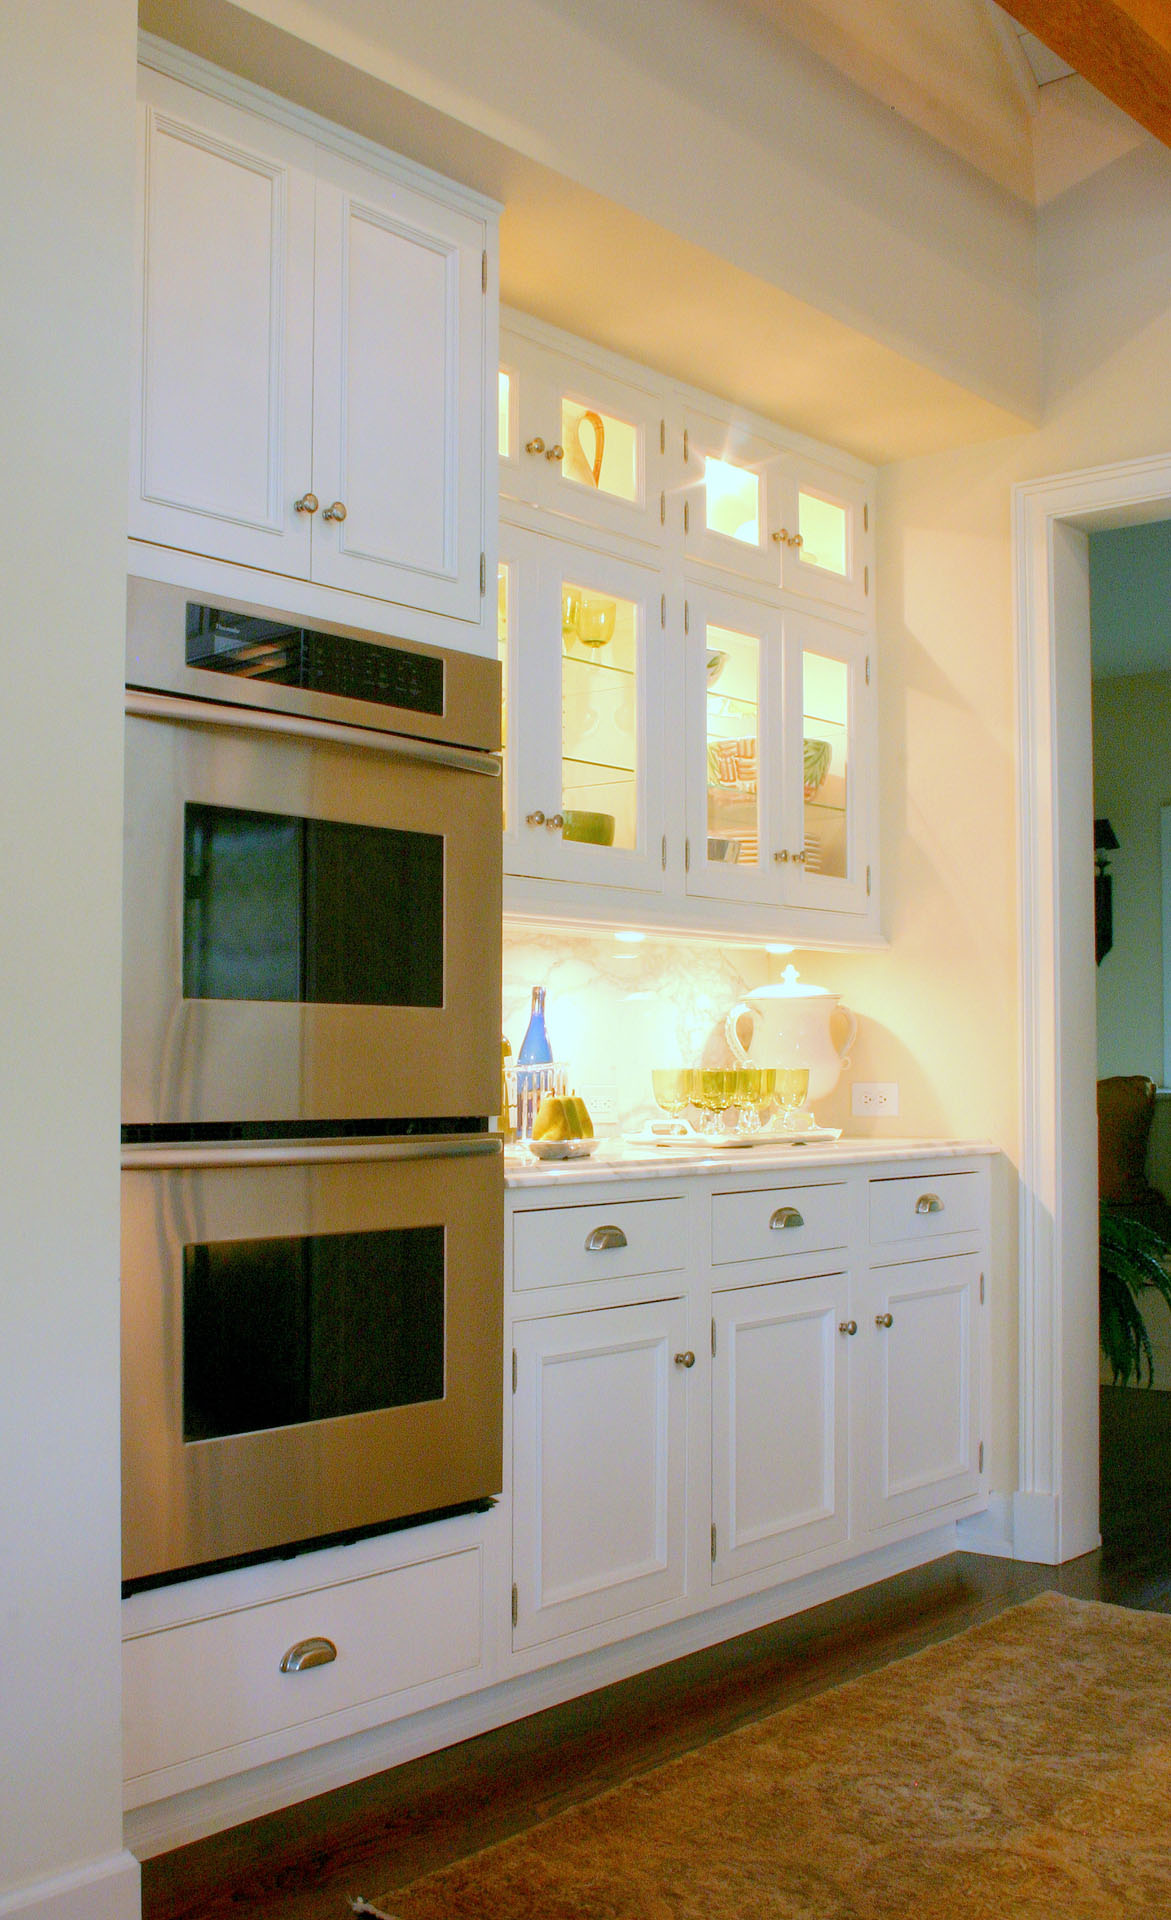 54th Street Painted Kitchen with Inset Doors